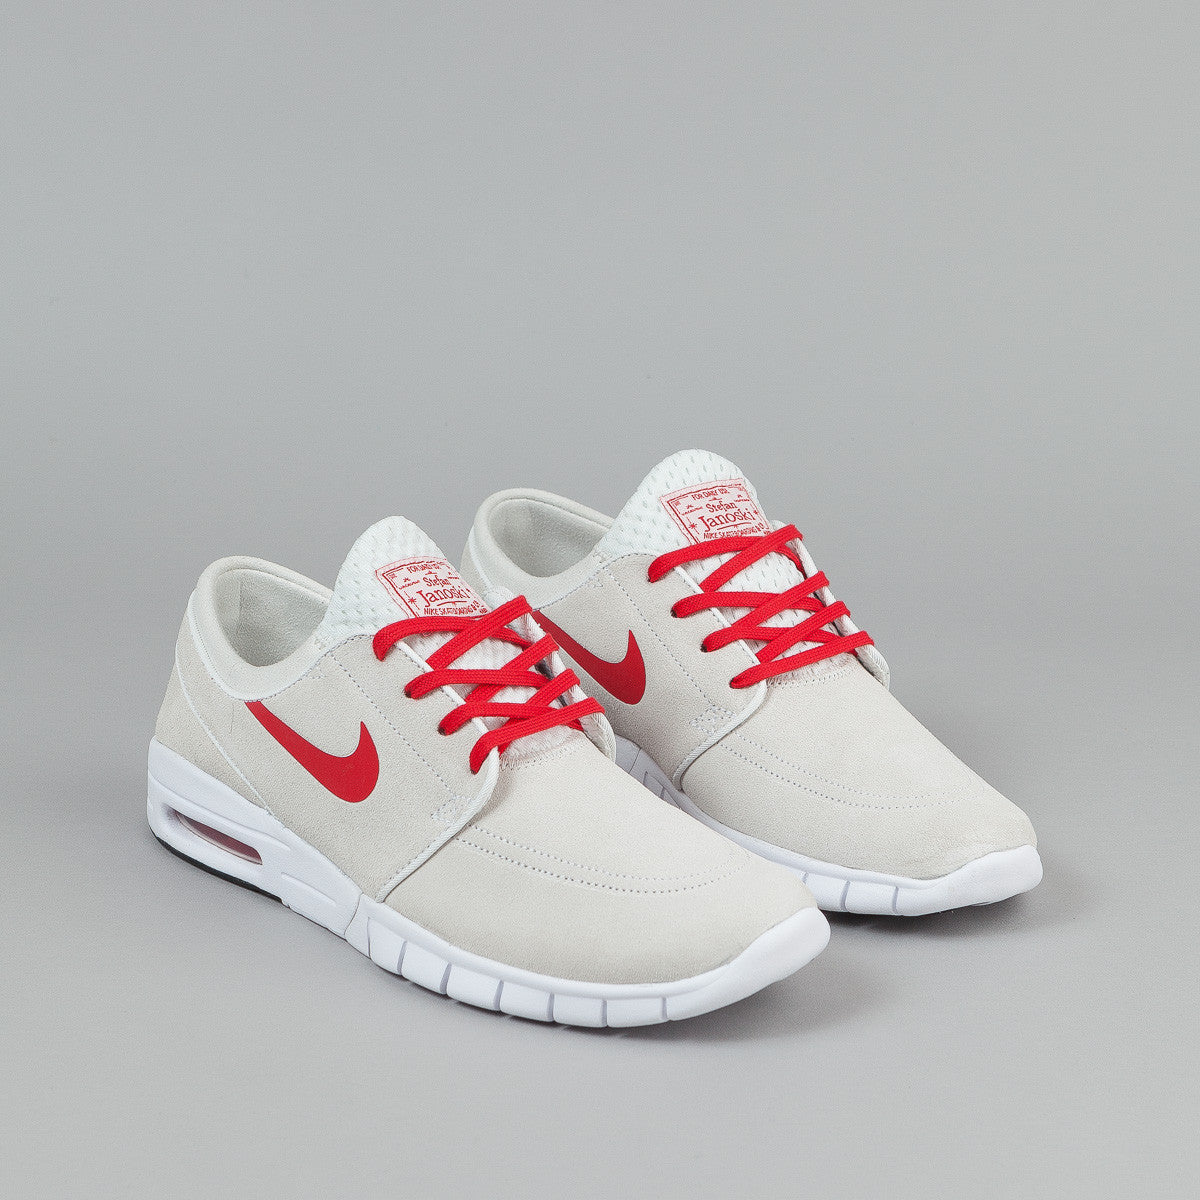 Nike SB Stefan Janoski Max L Suede Shoes - Summit White / University Red / White / Black